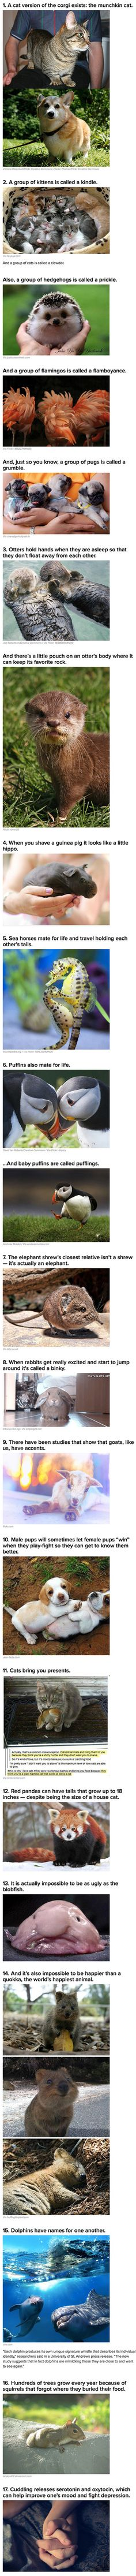 We have rounded up some geeky animal facts and stories you never knew about.